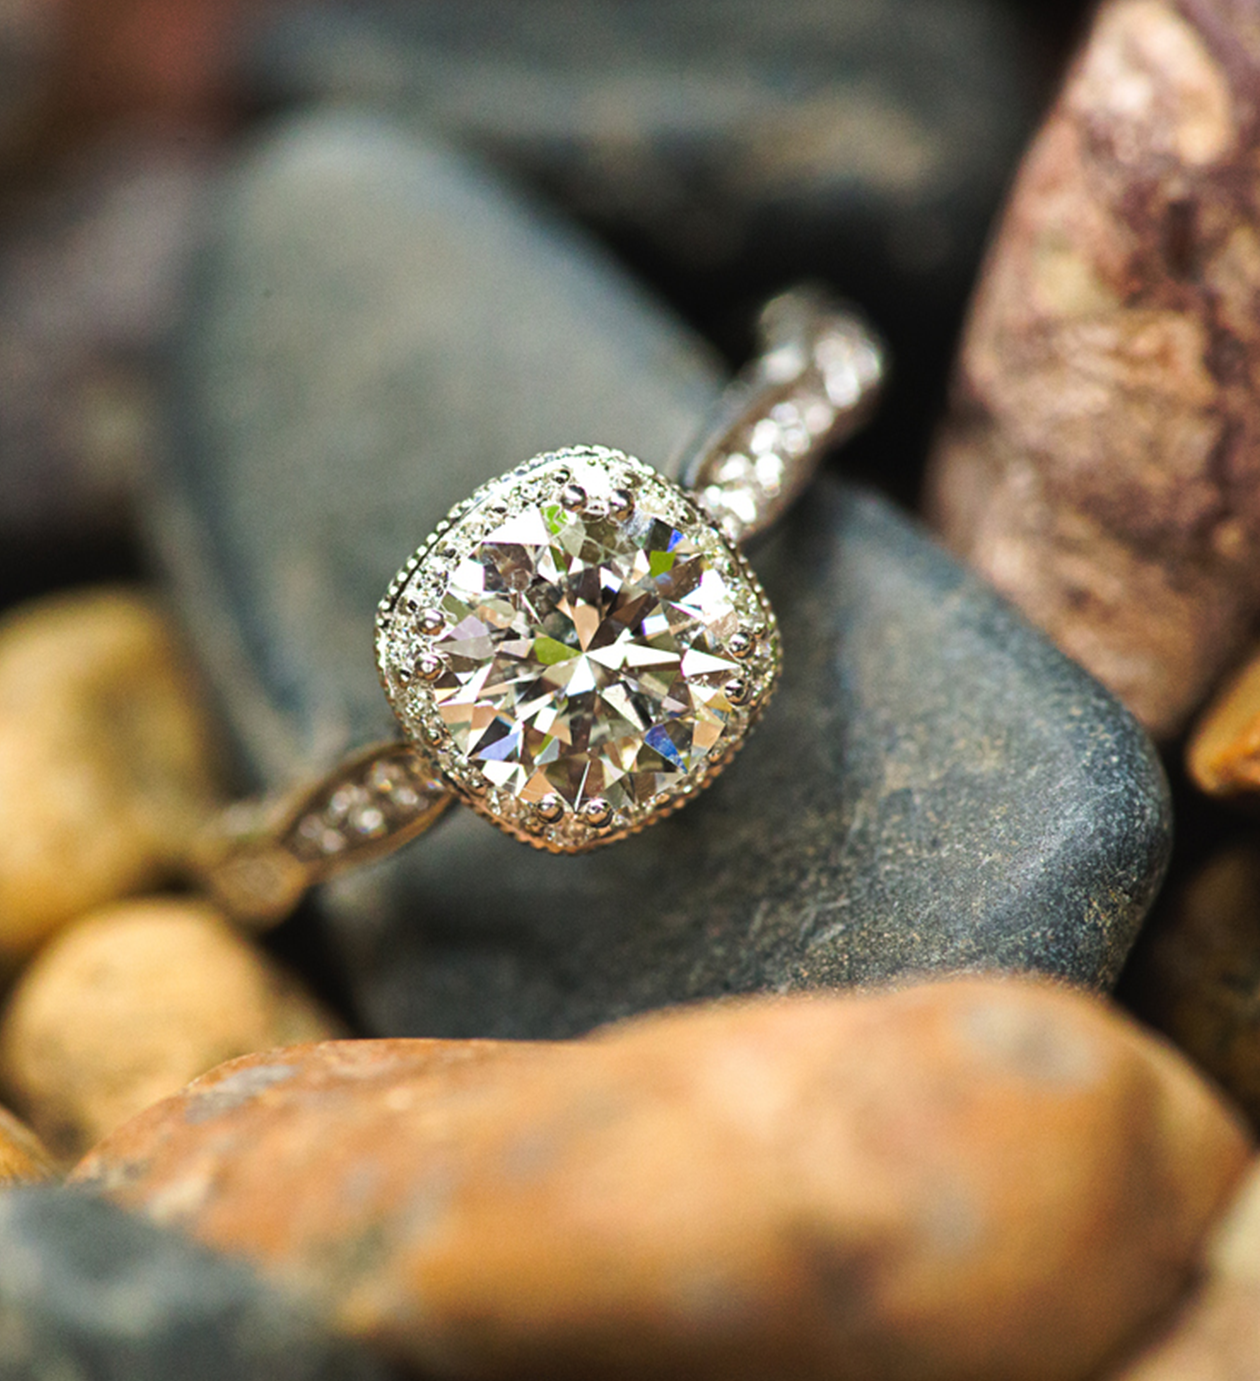 Engagement Ring from Todds Jewelers of Cleveland sitting on a stone